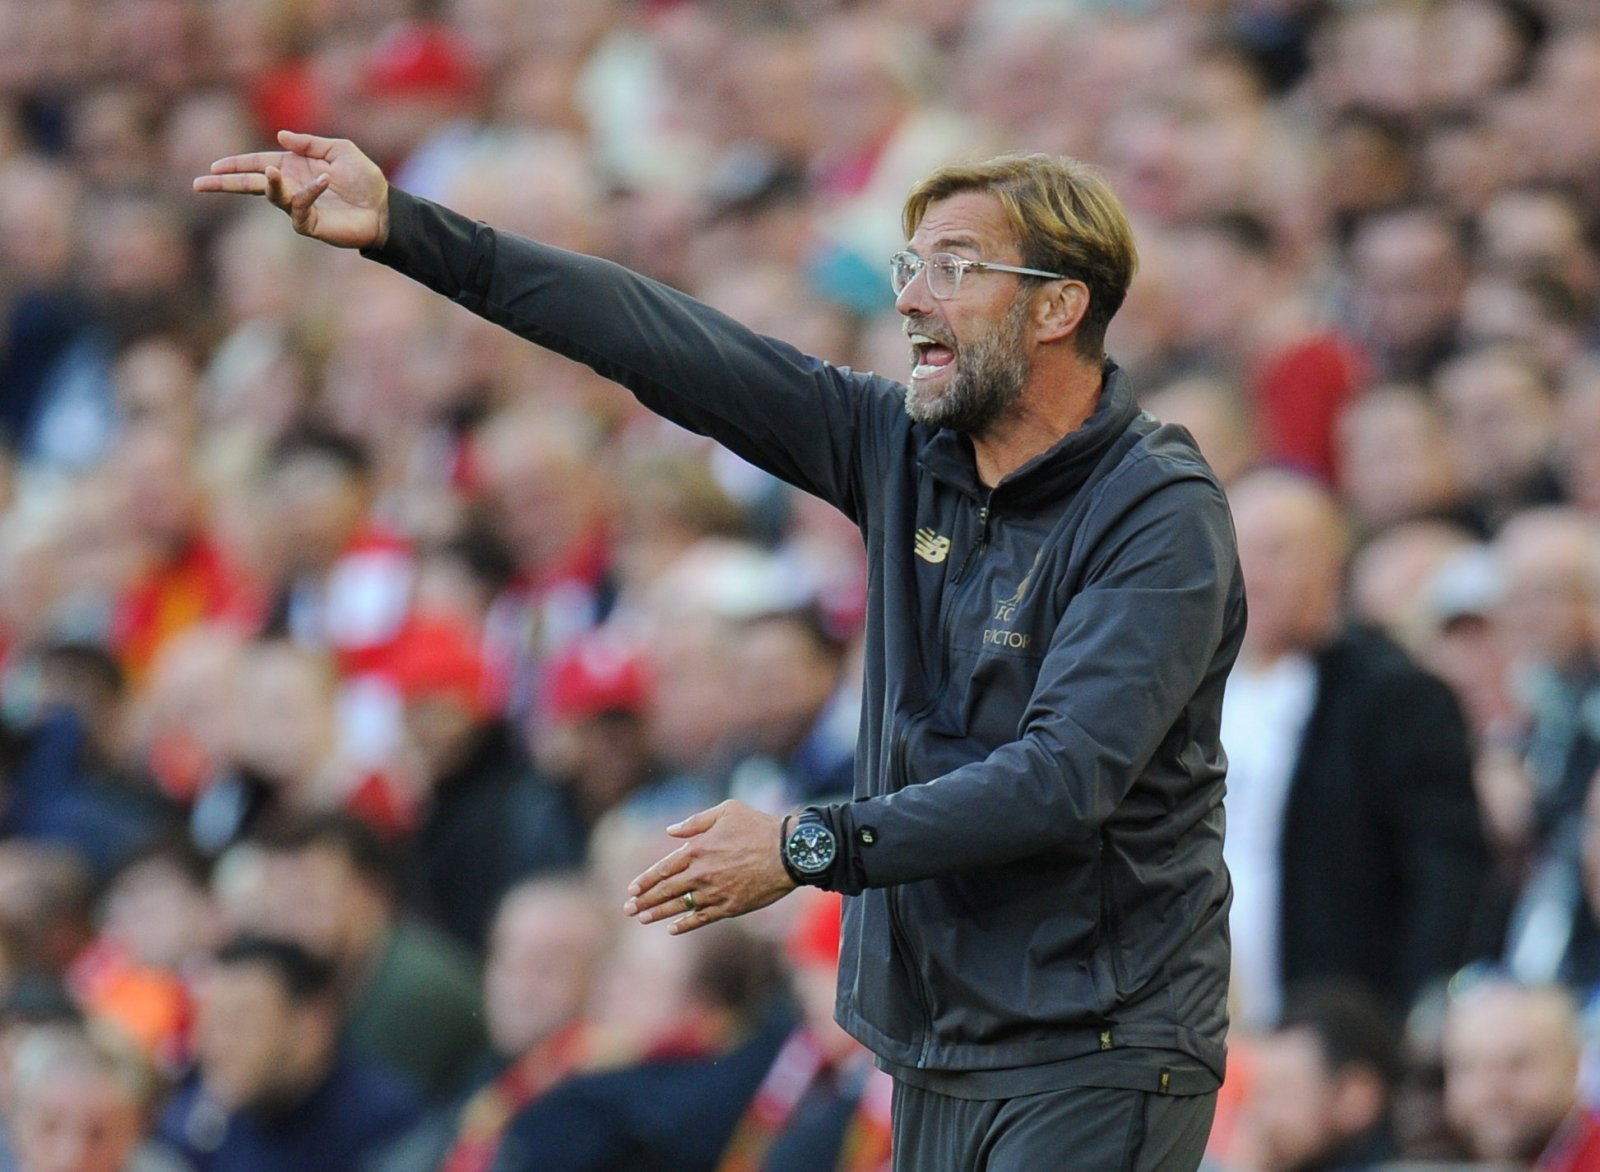 Robust: Liverpool will easily control Tottenham if Klopp selects this dynamic midfield